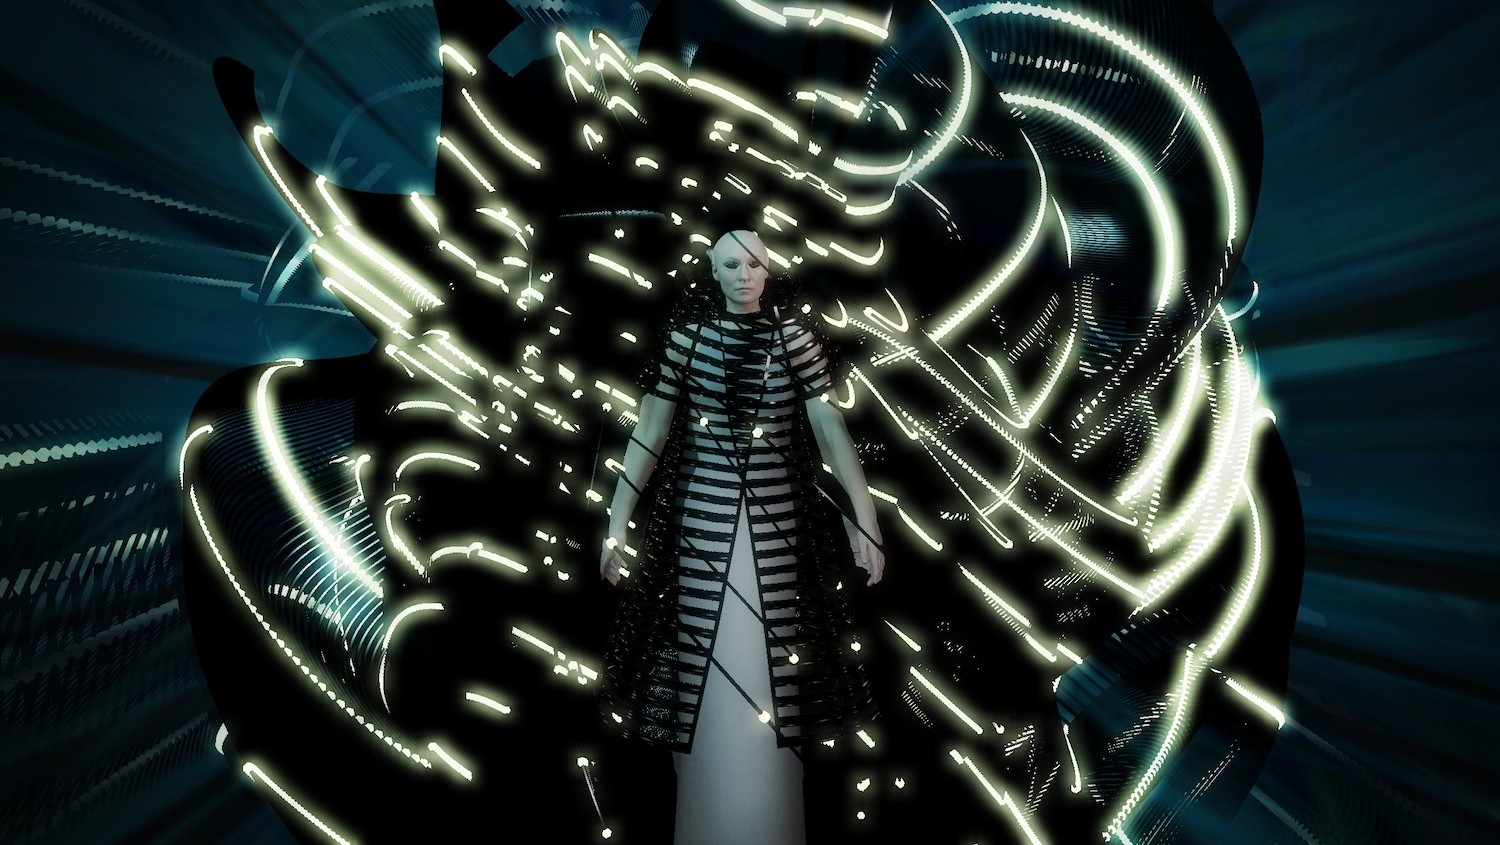 gareth pugh's designed some VR costumes for an opera set in space